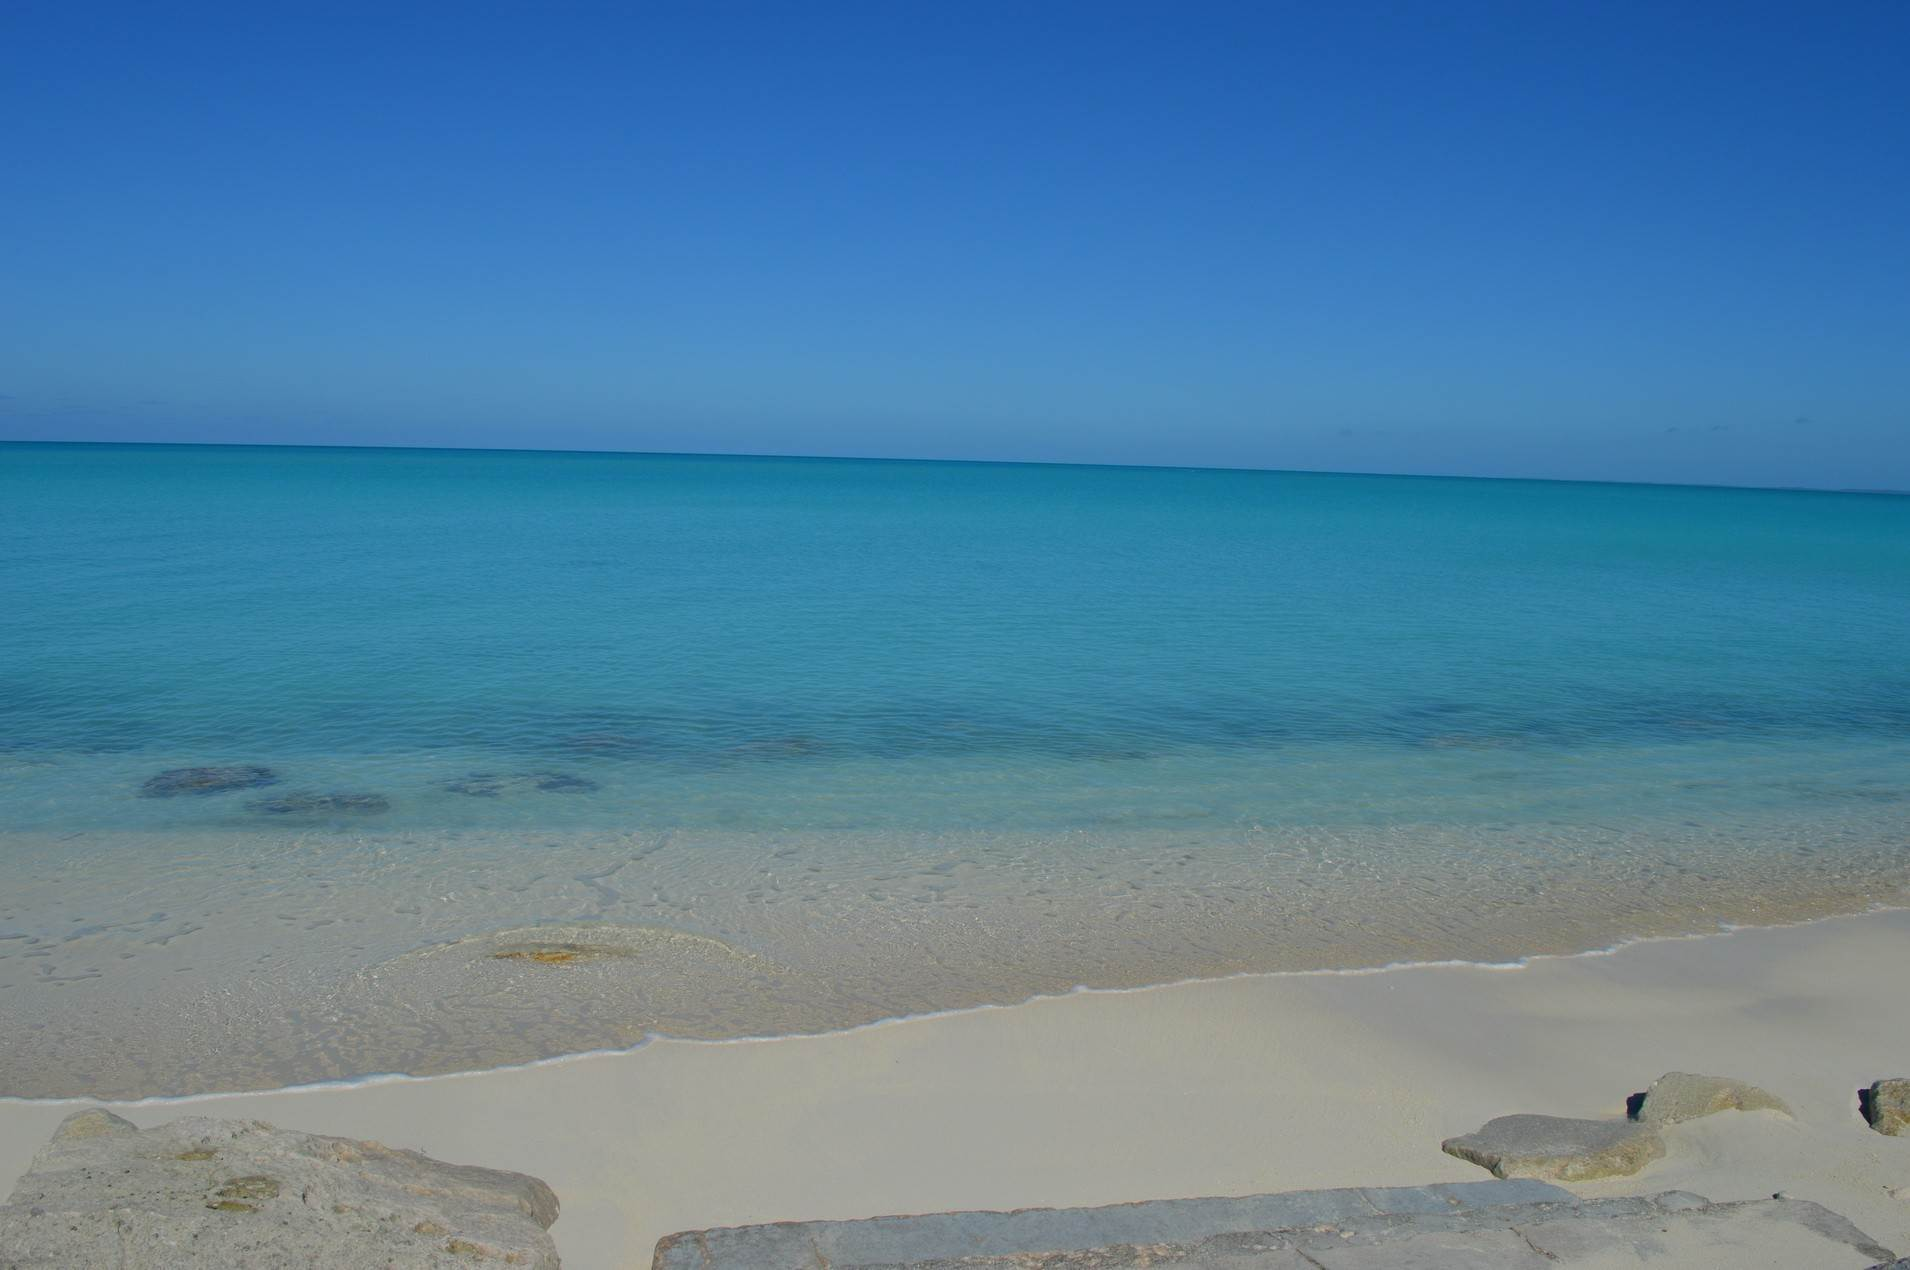 Land for Sale at Beachfront Lot #27, Hawk's Nest Cat Island MLS 29058 Hawks Nest, Cat Island, Bahamas